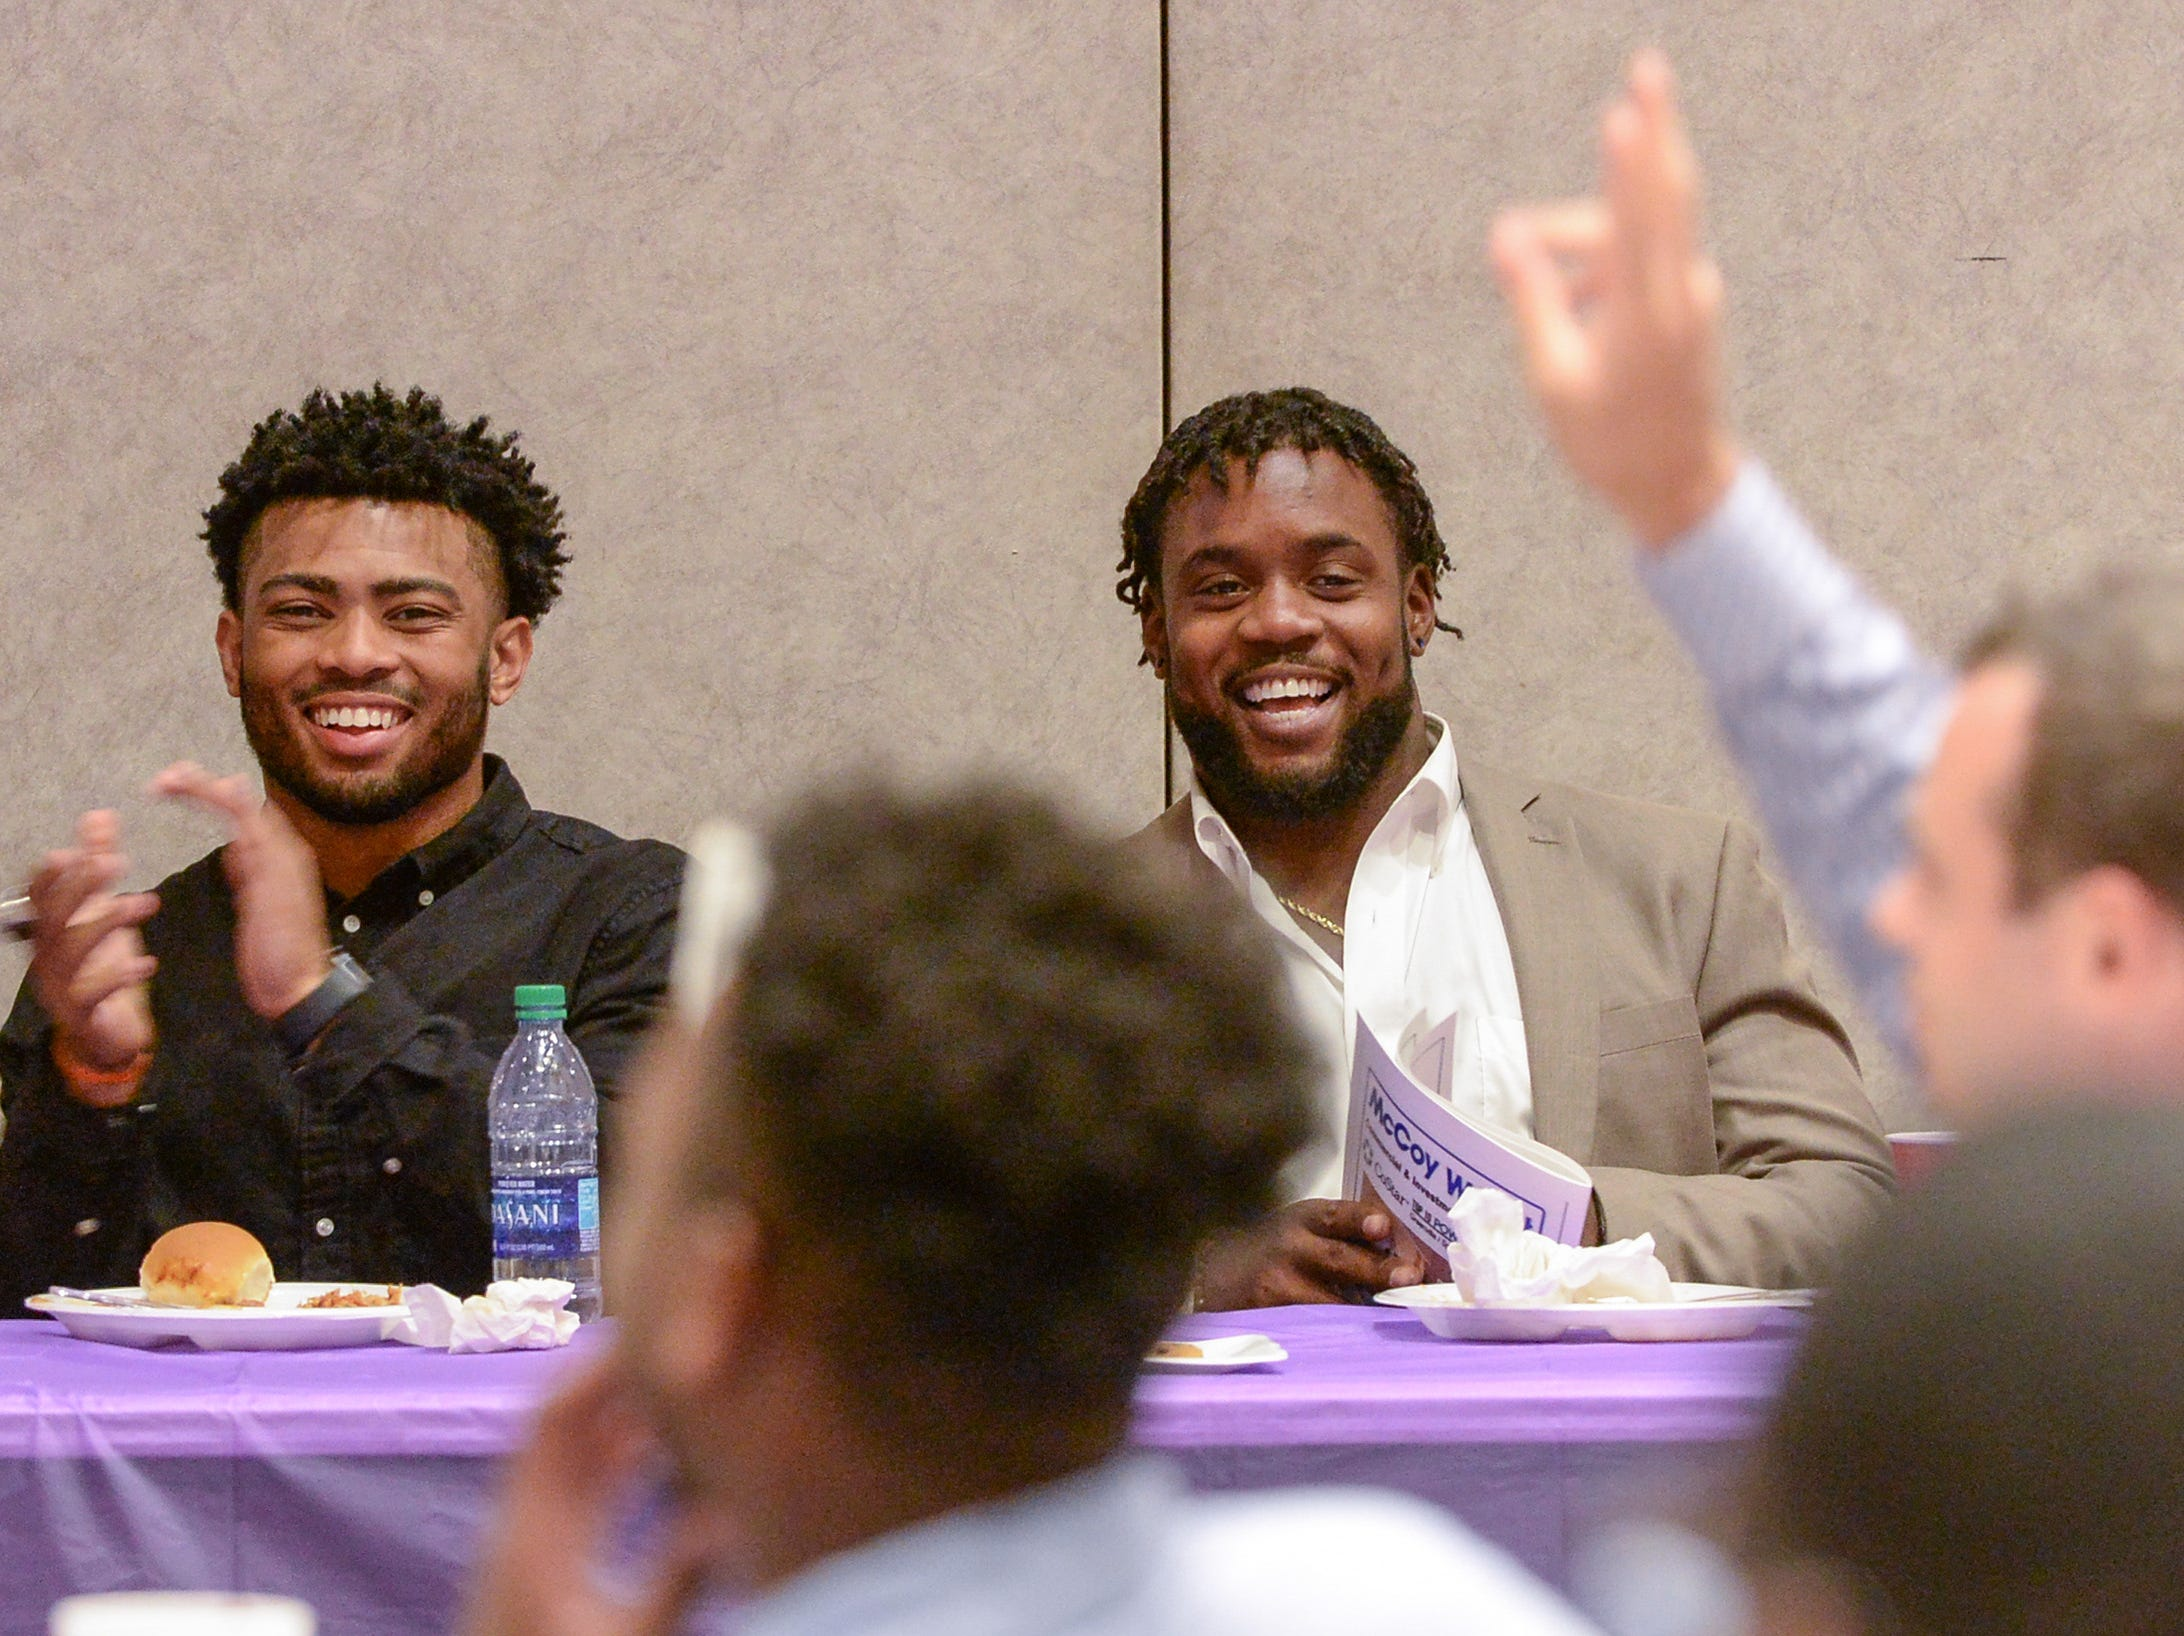 Darien Rencher, left, Clemson football running back and former T.L. Hanna High School, smiles with Kendall Joseph, former Belton-Honea Path and both two-time college football national champions, as Hunter Renfrow raises his hand during the Anderson Area Touchdown Club Annual Awards Banquet at the Anderson County Civic Center Monday, April 8th, 2019.